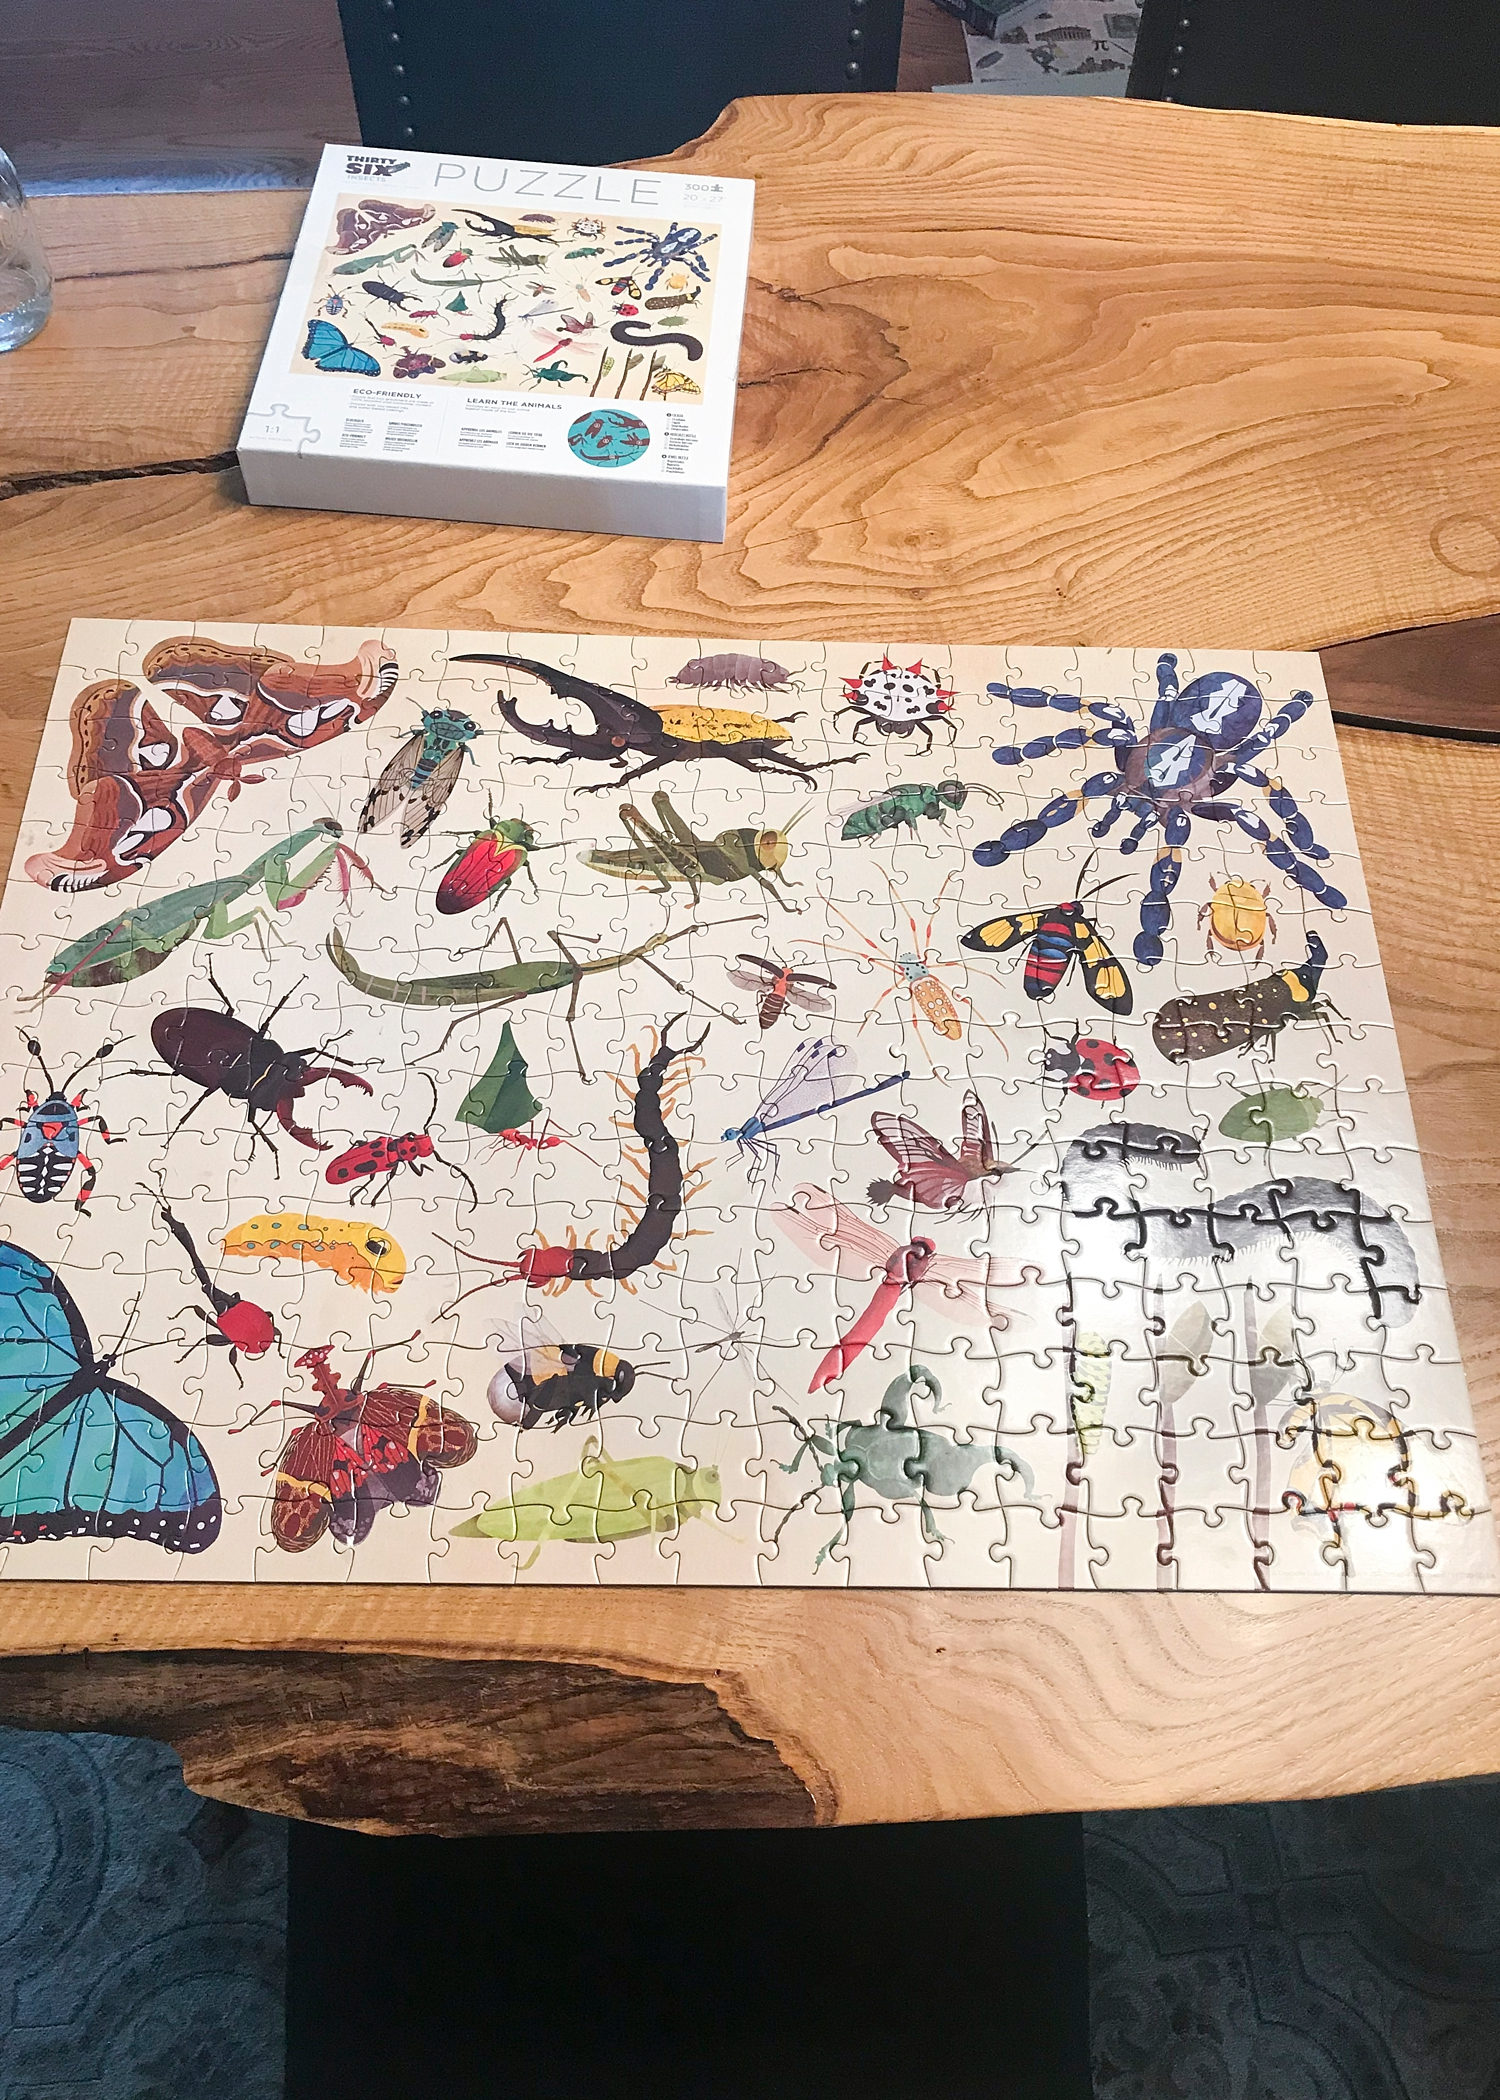 We're back into puzzles in this installment of a Week in the Life of an Unschooler :)